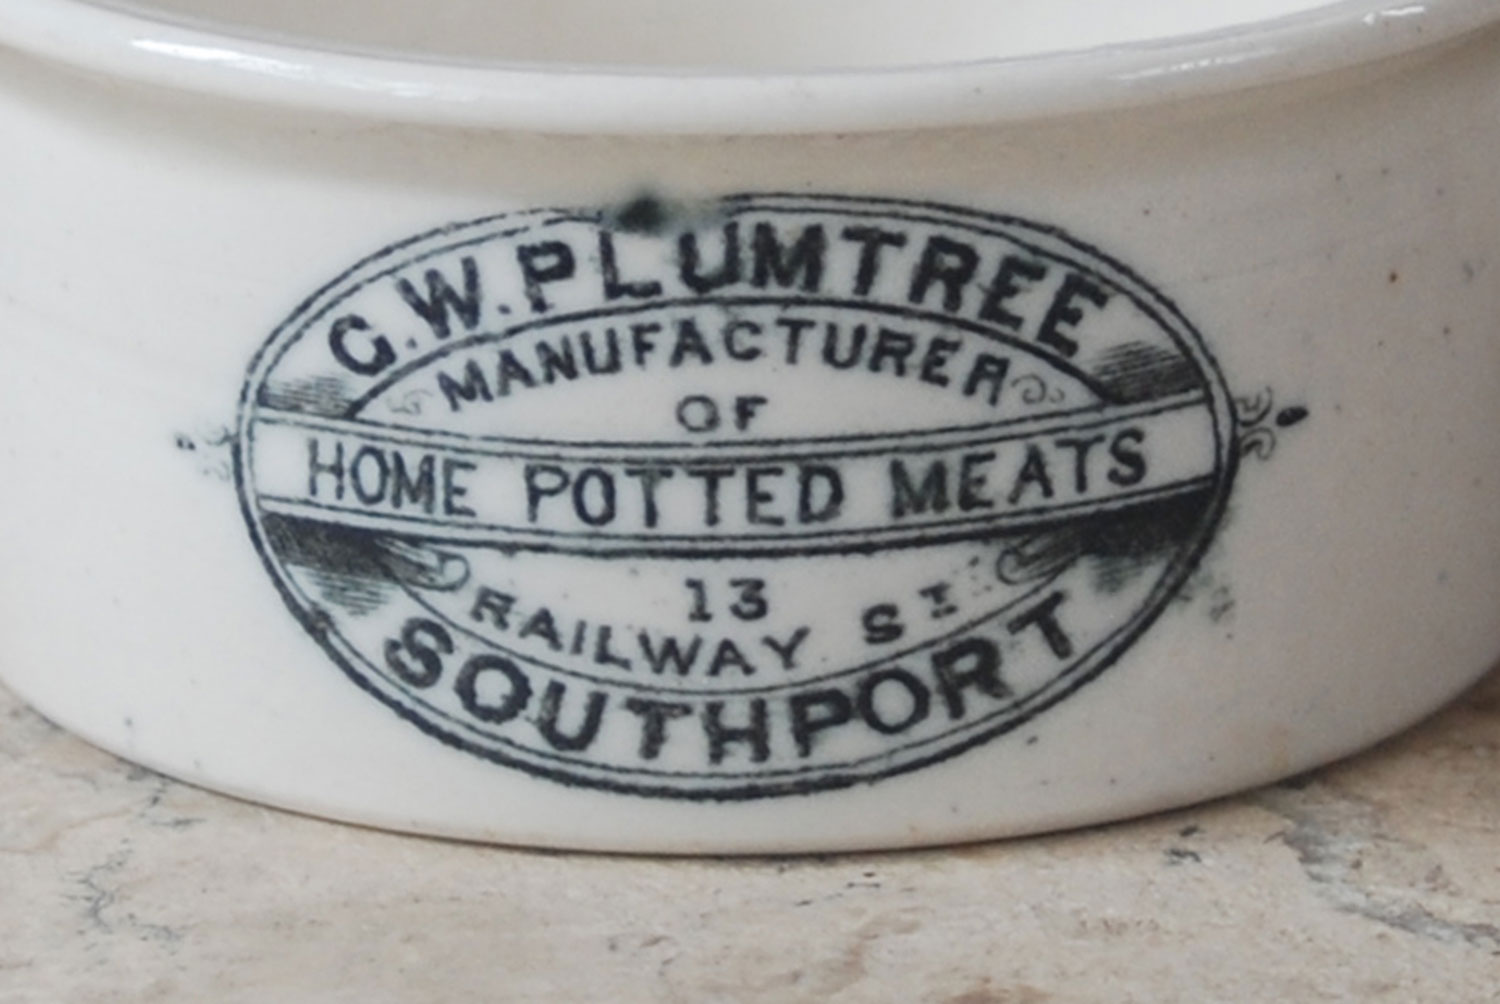 GW Plumtree southport antique victorian edwardian ironstone packaging advertising potted meat